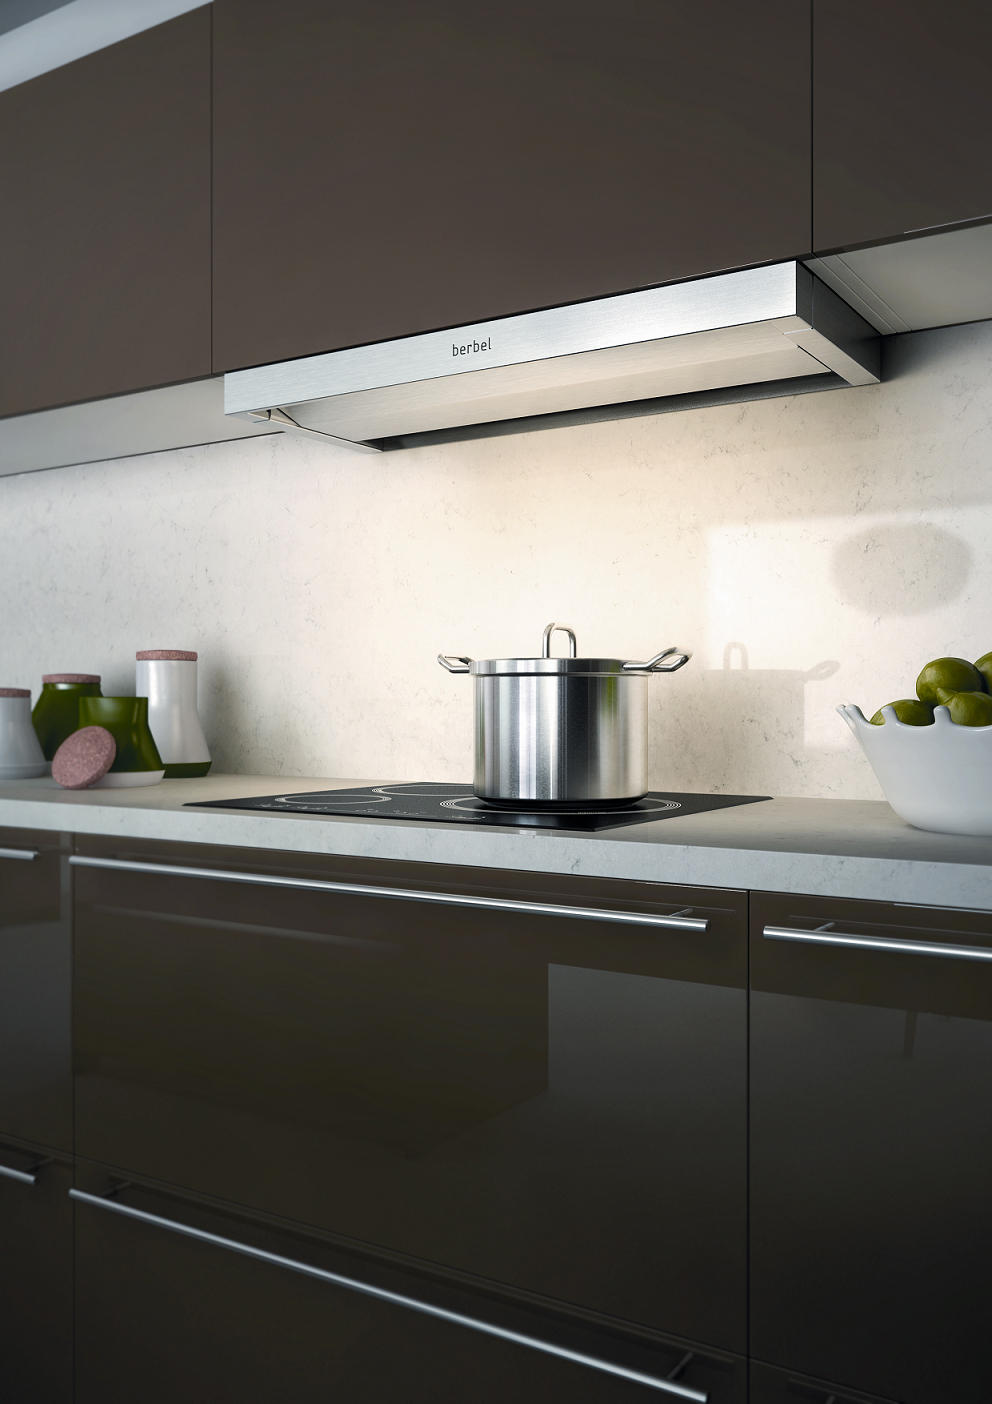 Built In Hood Moveline Extractors From Berbel Architonic